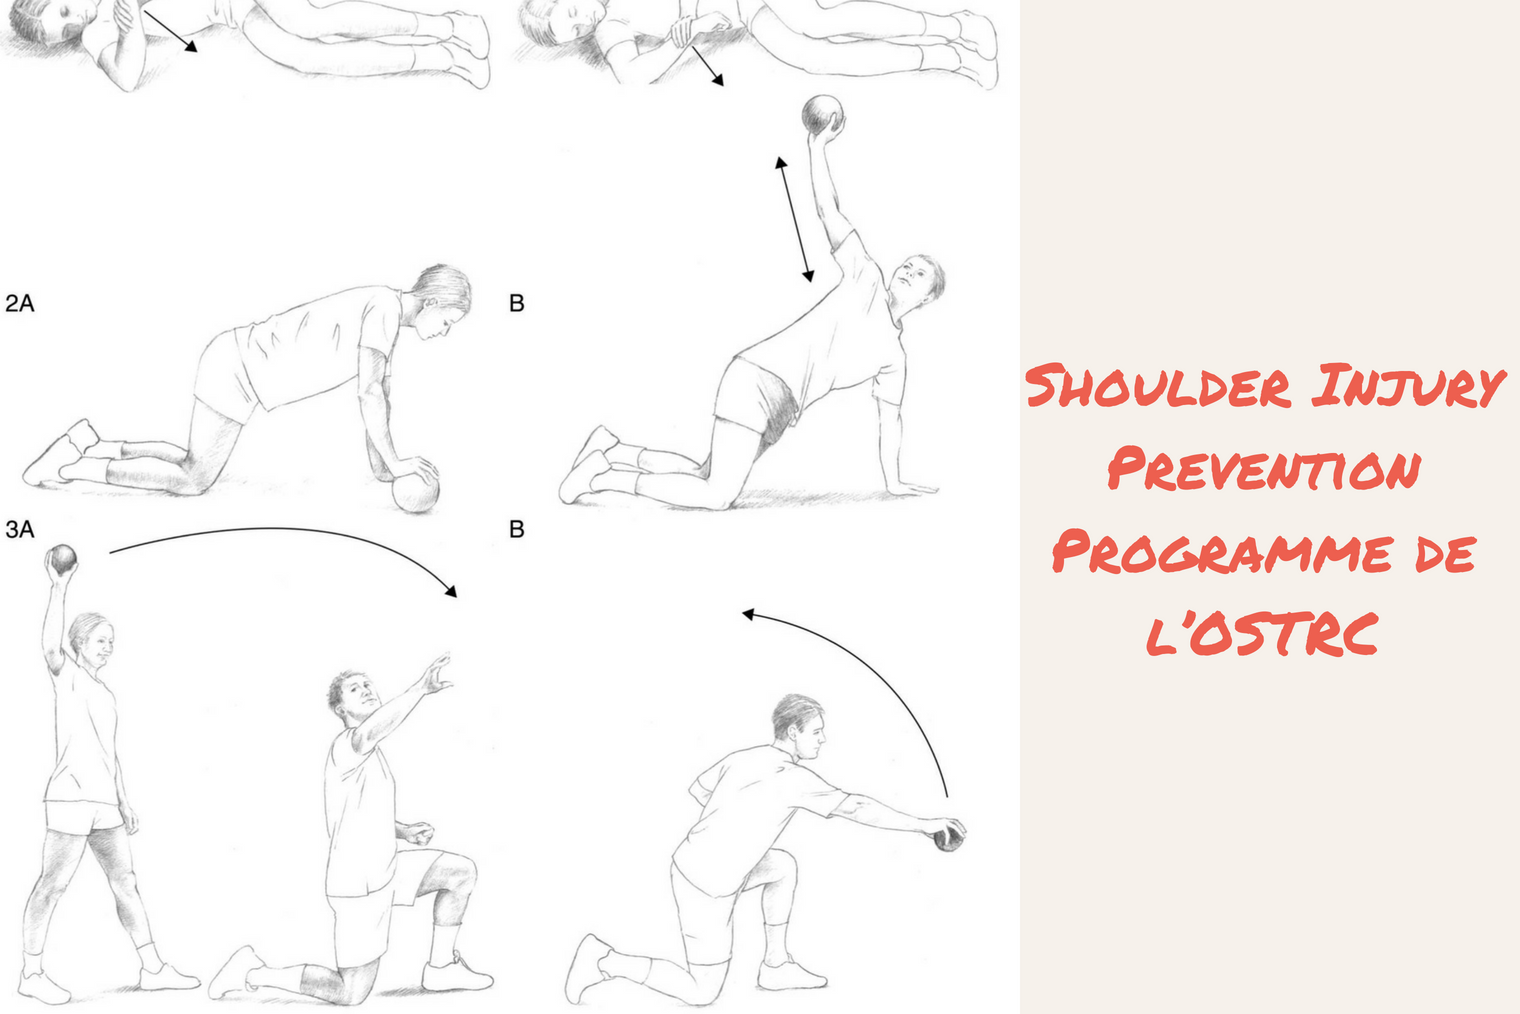 Shoulder injury prevention programme illustration